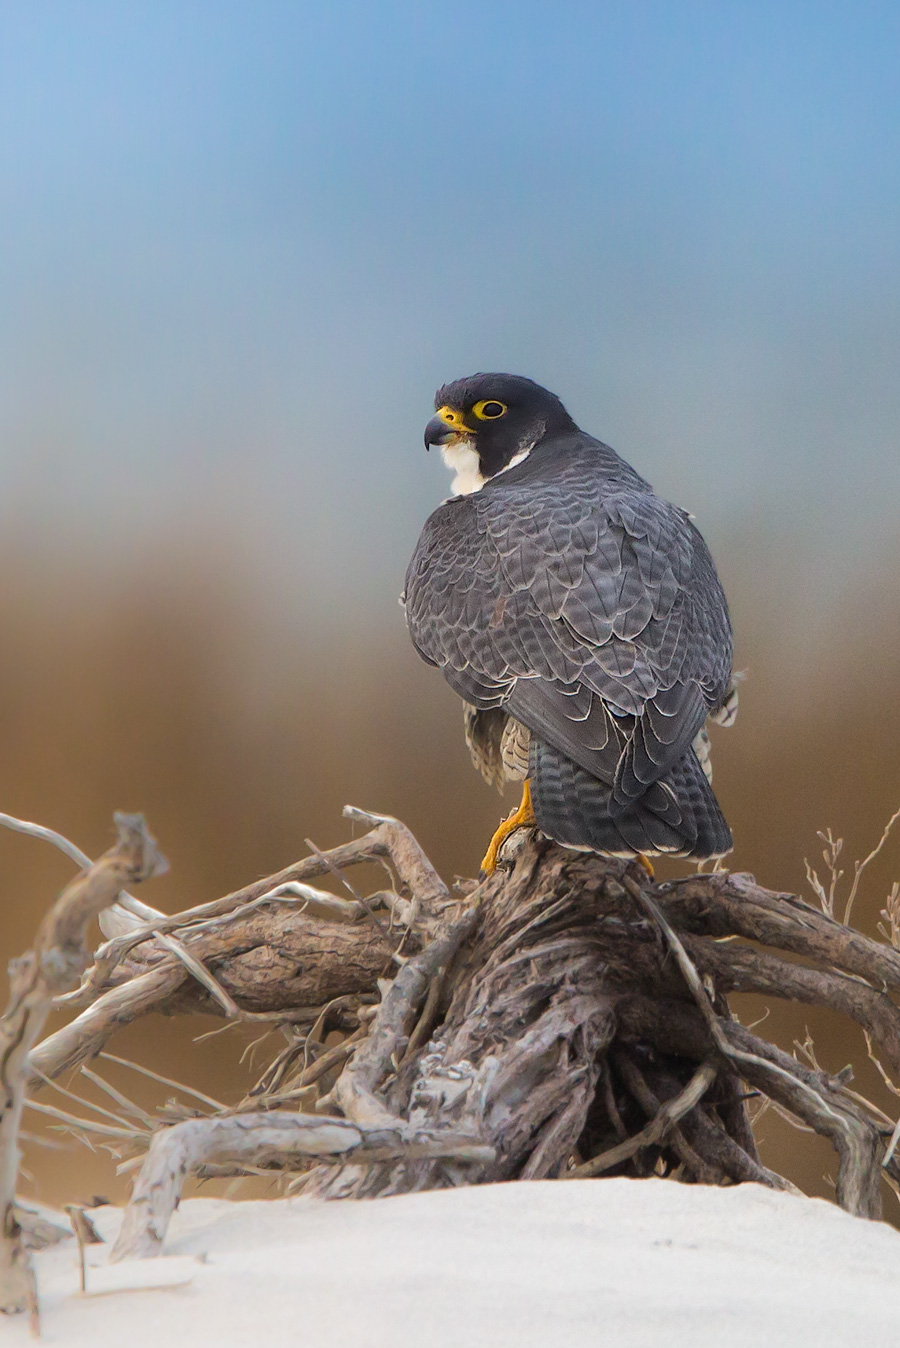 Only Peregrine Falcon thinks she has a chance of taking Santa down this year.